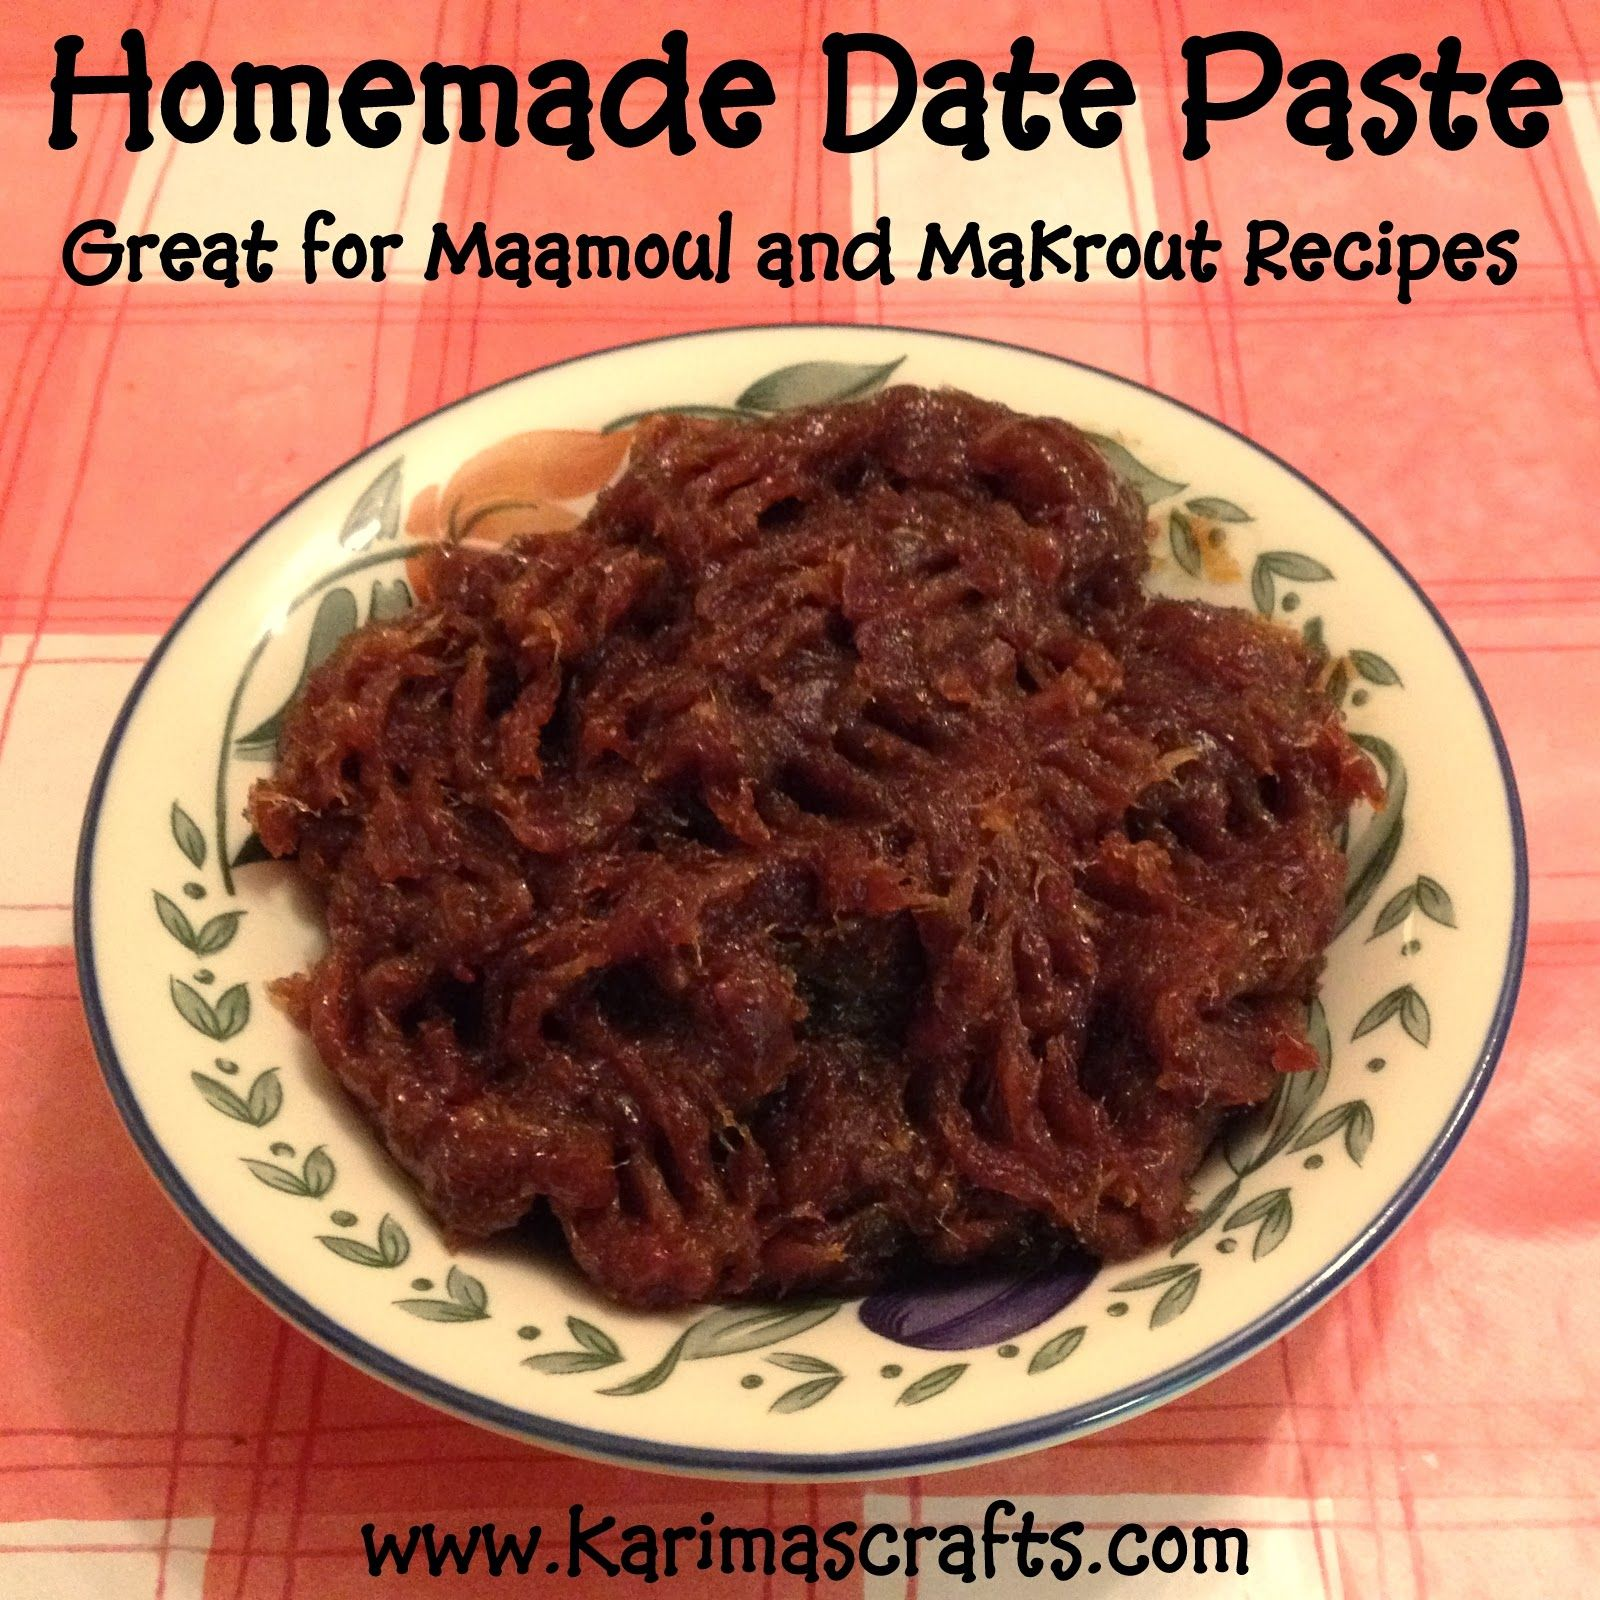 Date paste recipe used for maamoul and makrout my blog projects food forumfinder Image collections